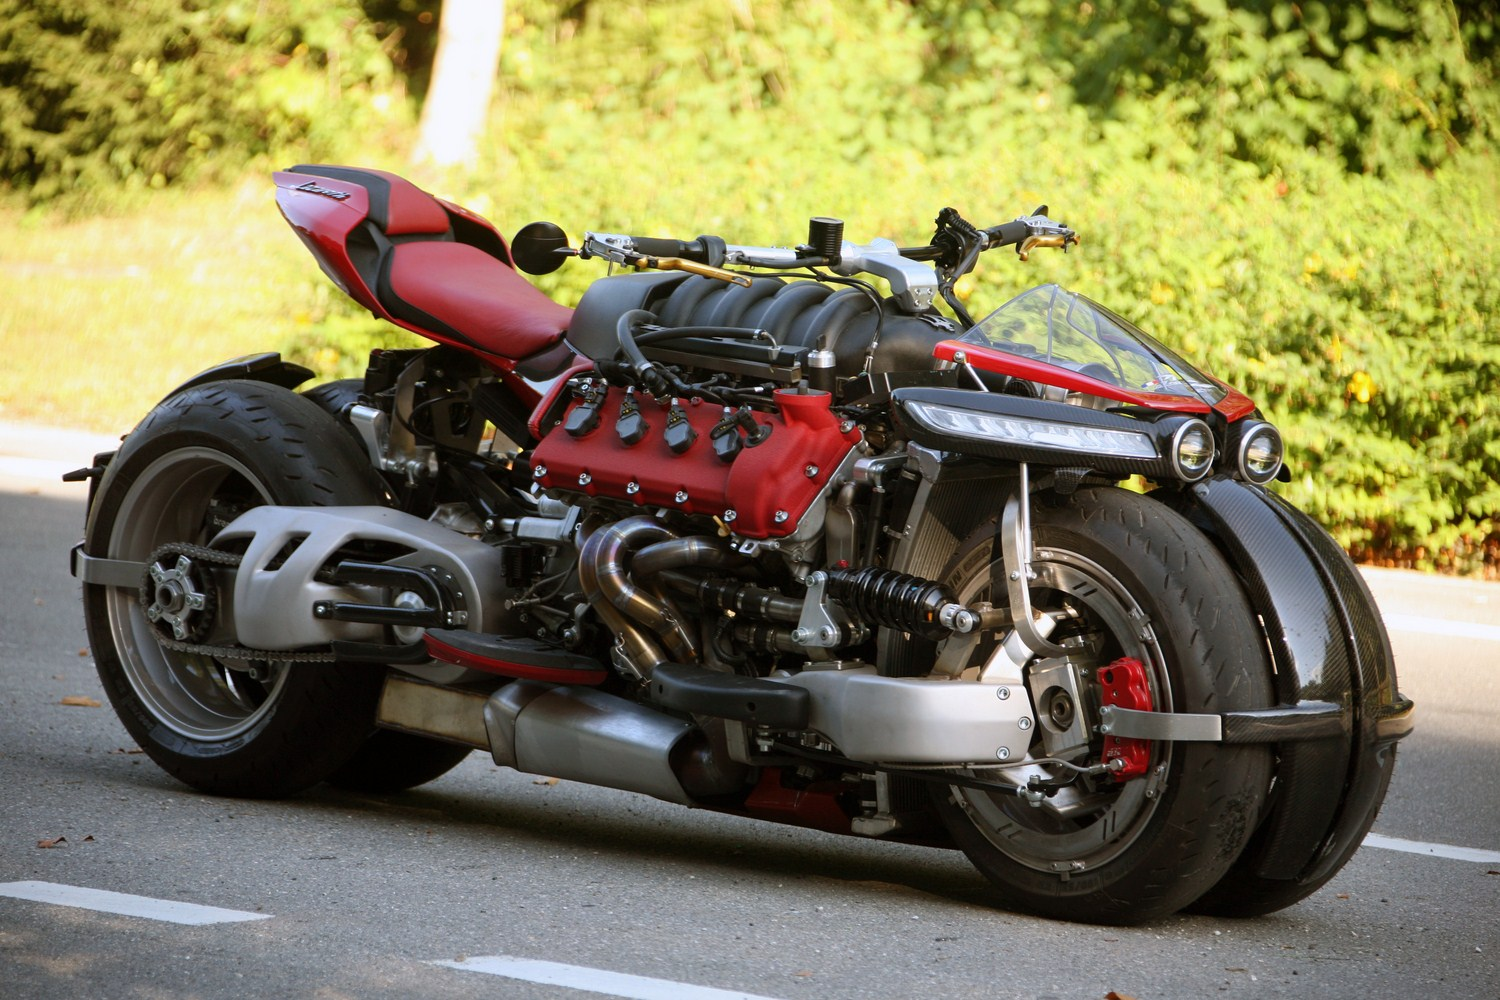 Motorcycles Don't Come Crazier Than The Maserati V8